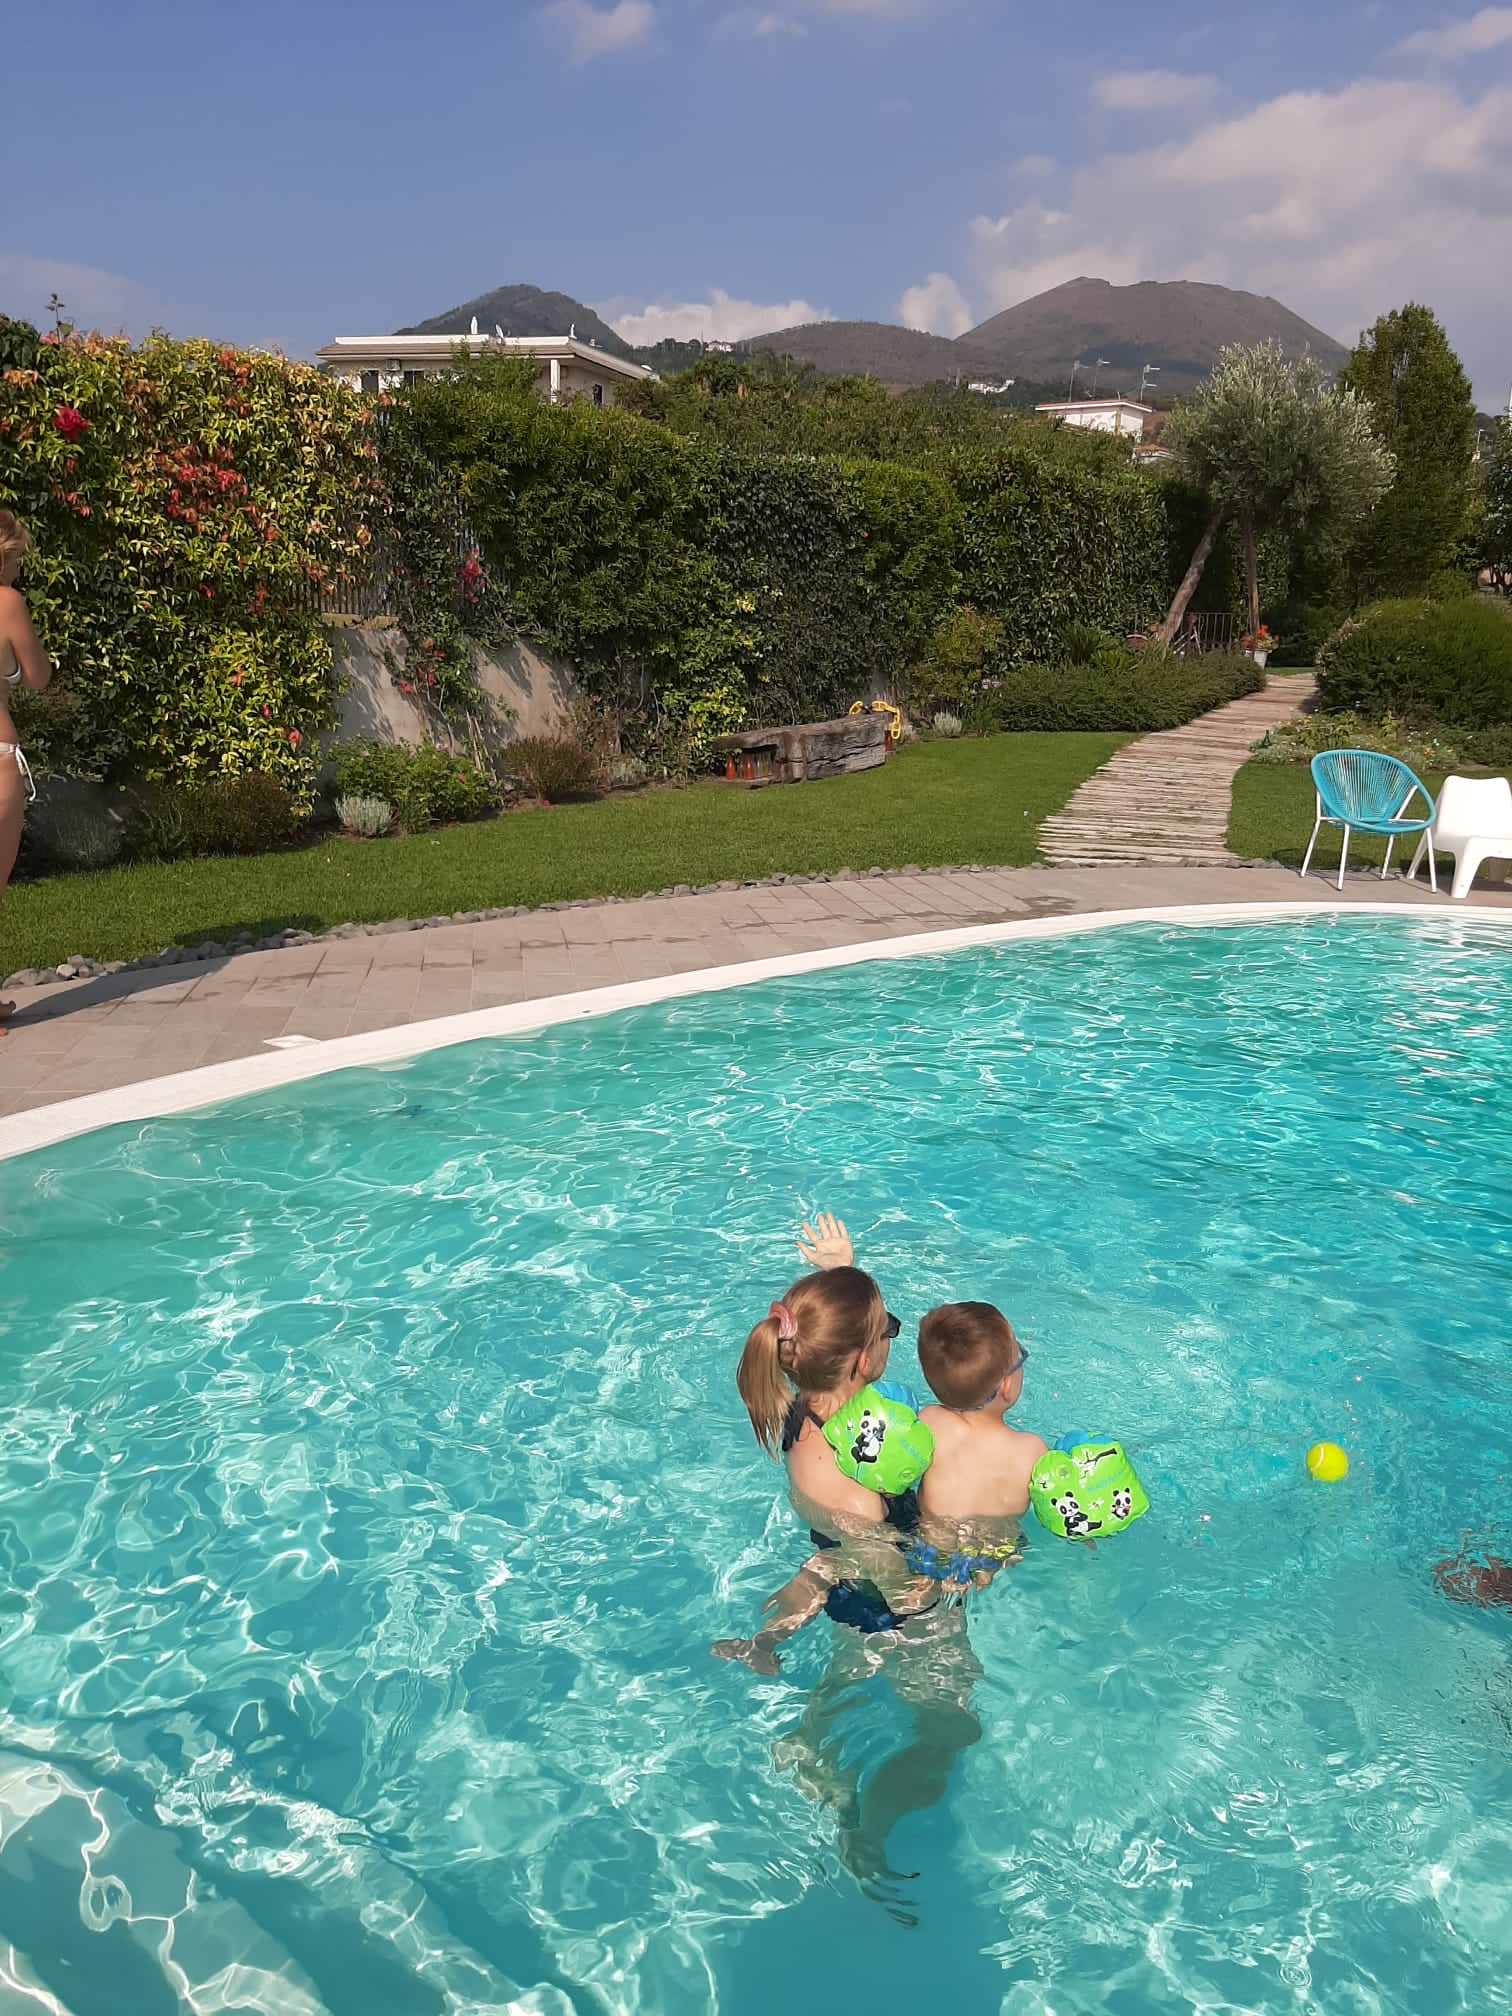 Travel blogger and son in pool in Ercolano